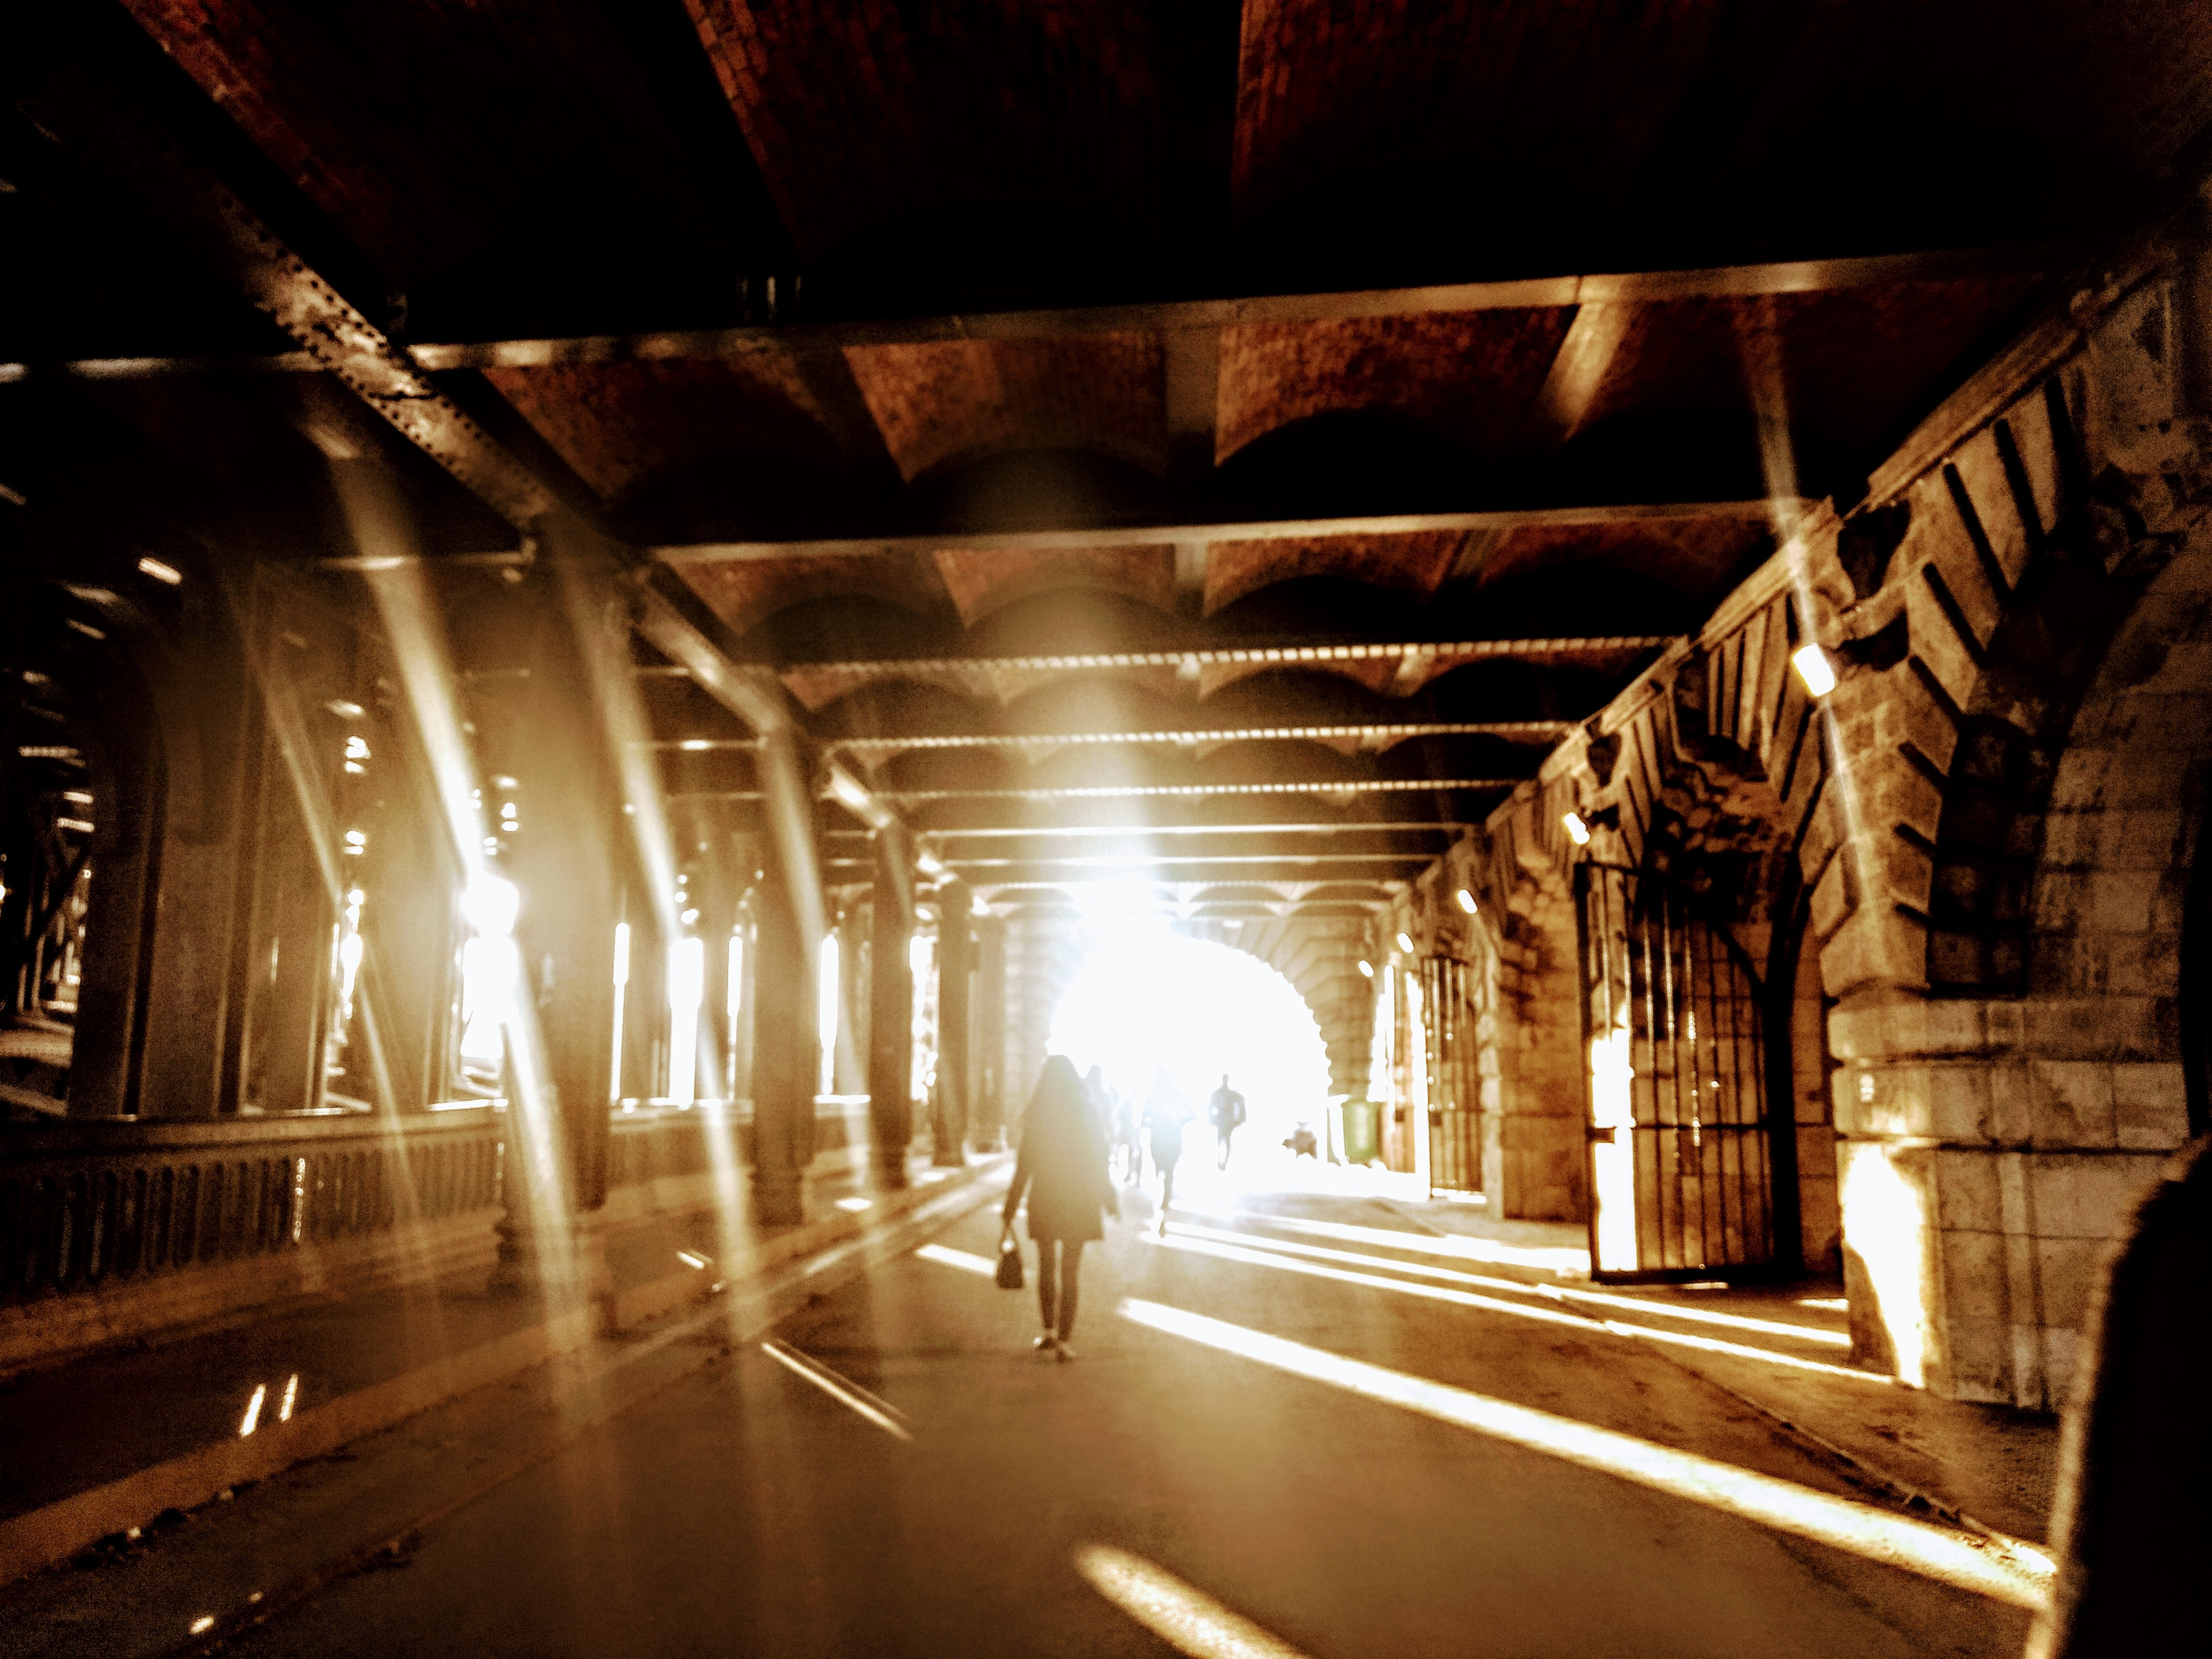 person walking in tunnel during daytime